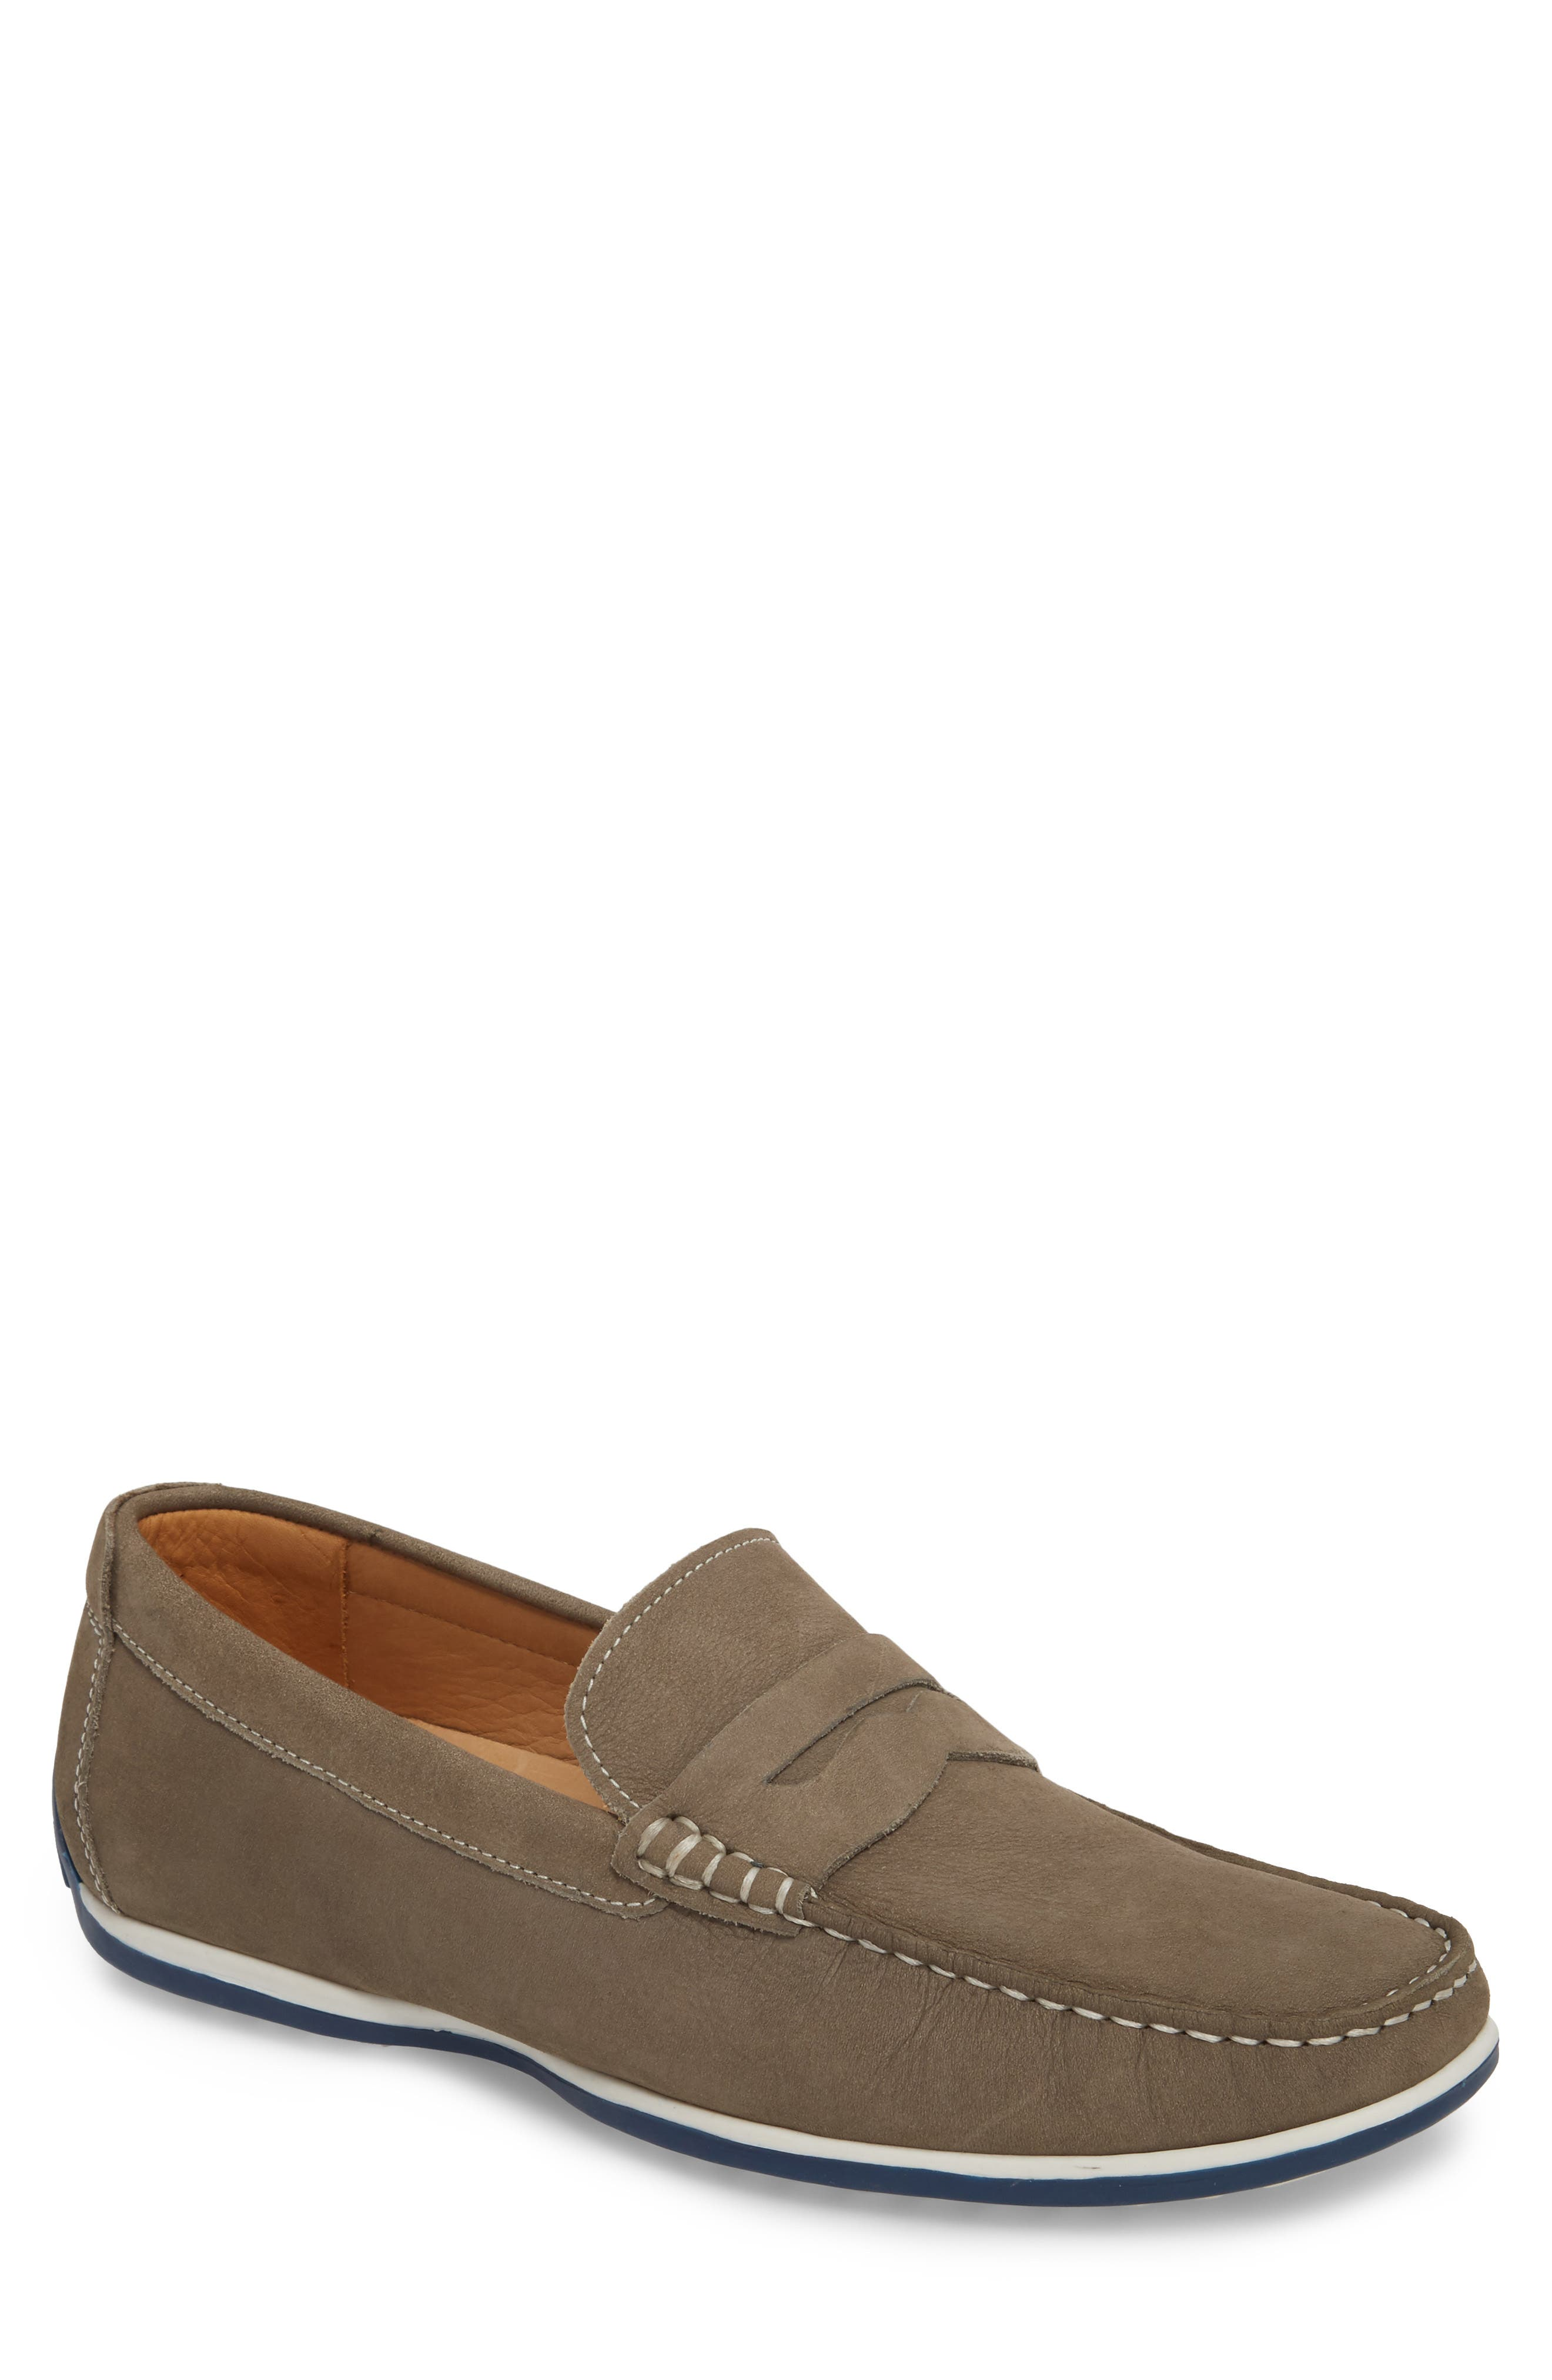 Breakside Driving Loafer,                             Main thumbnail 1, color,                             020